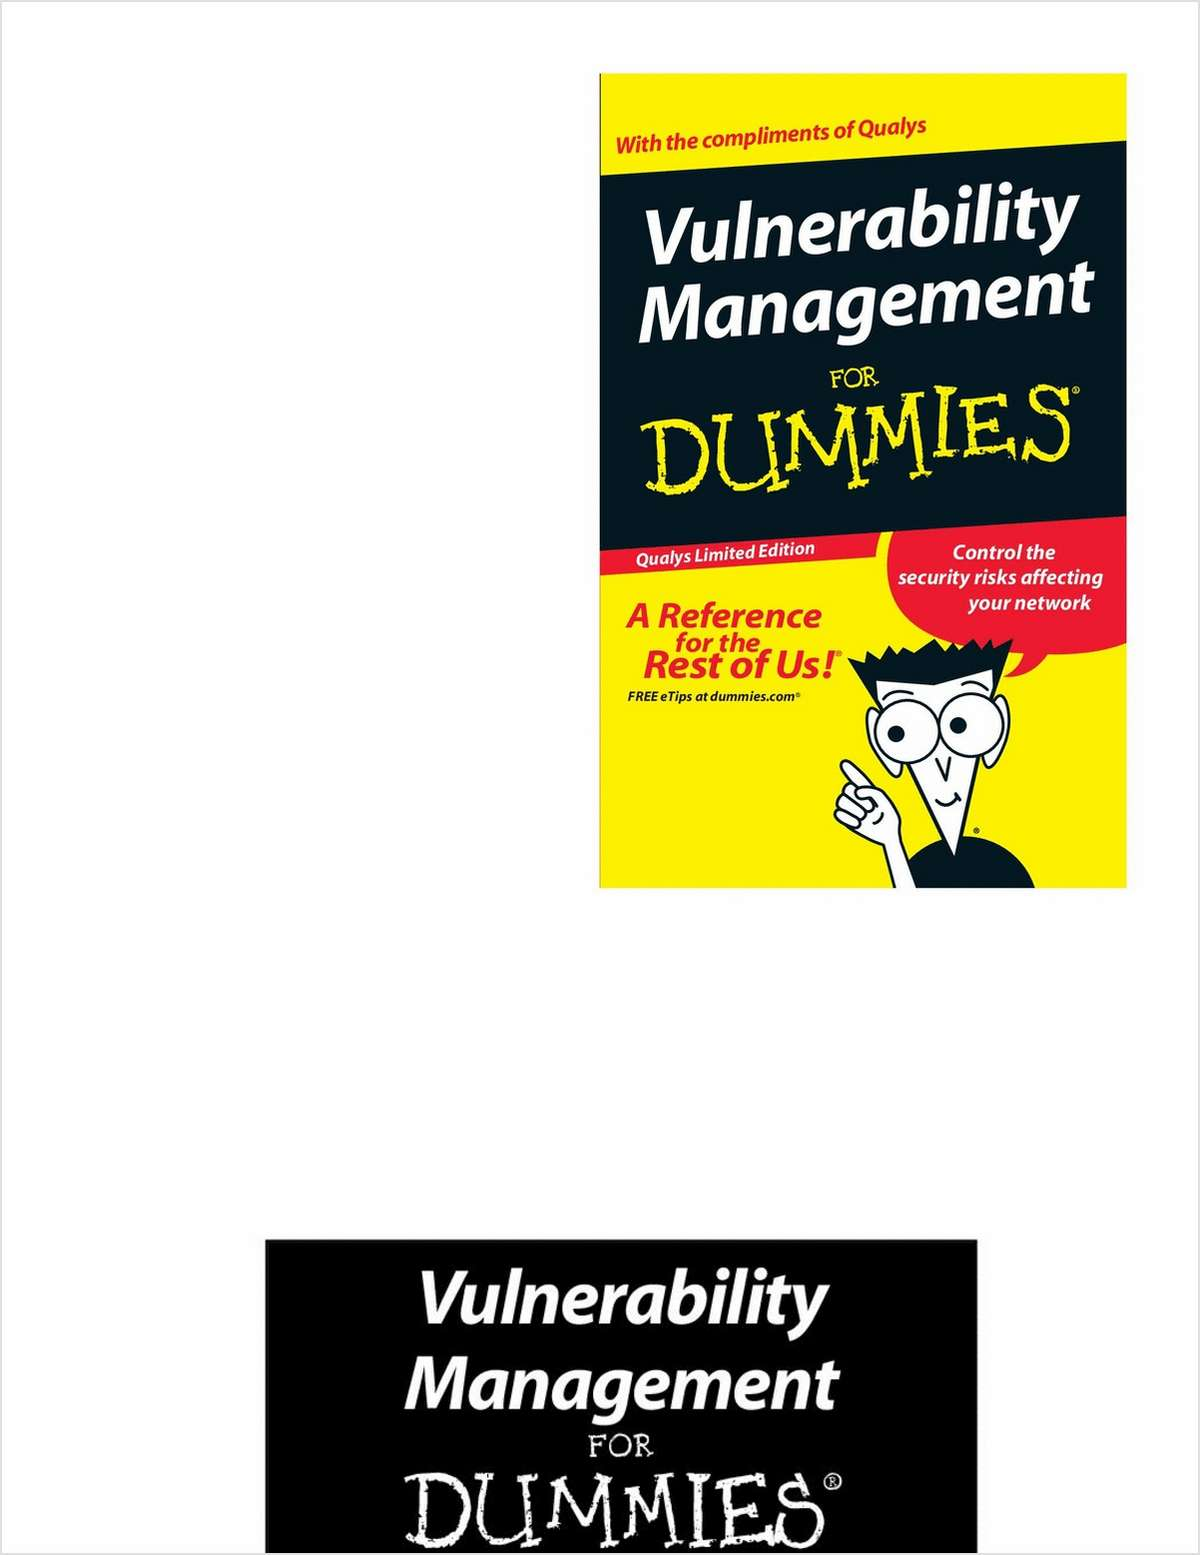 Vulnerability Management for Dummies